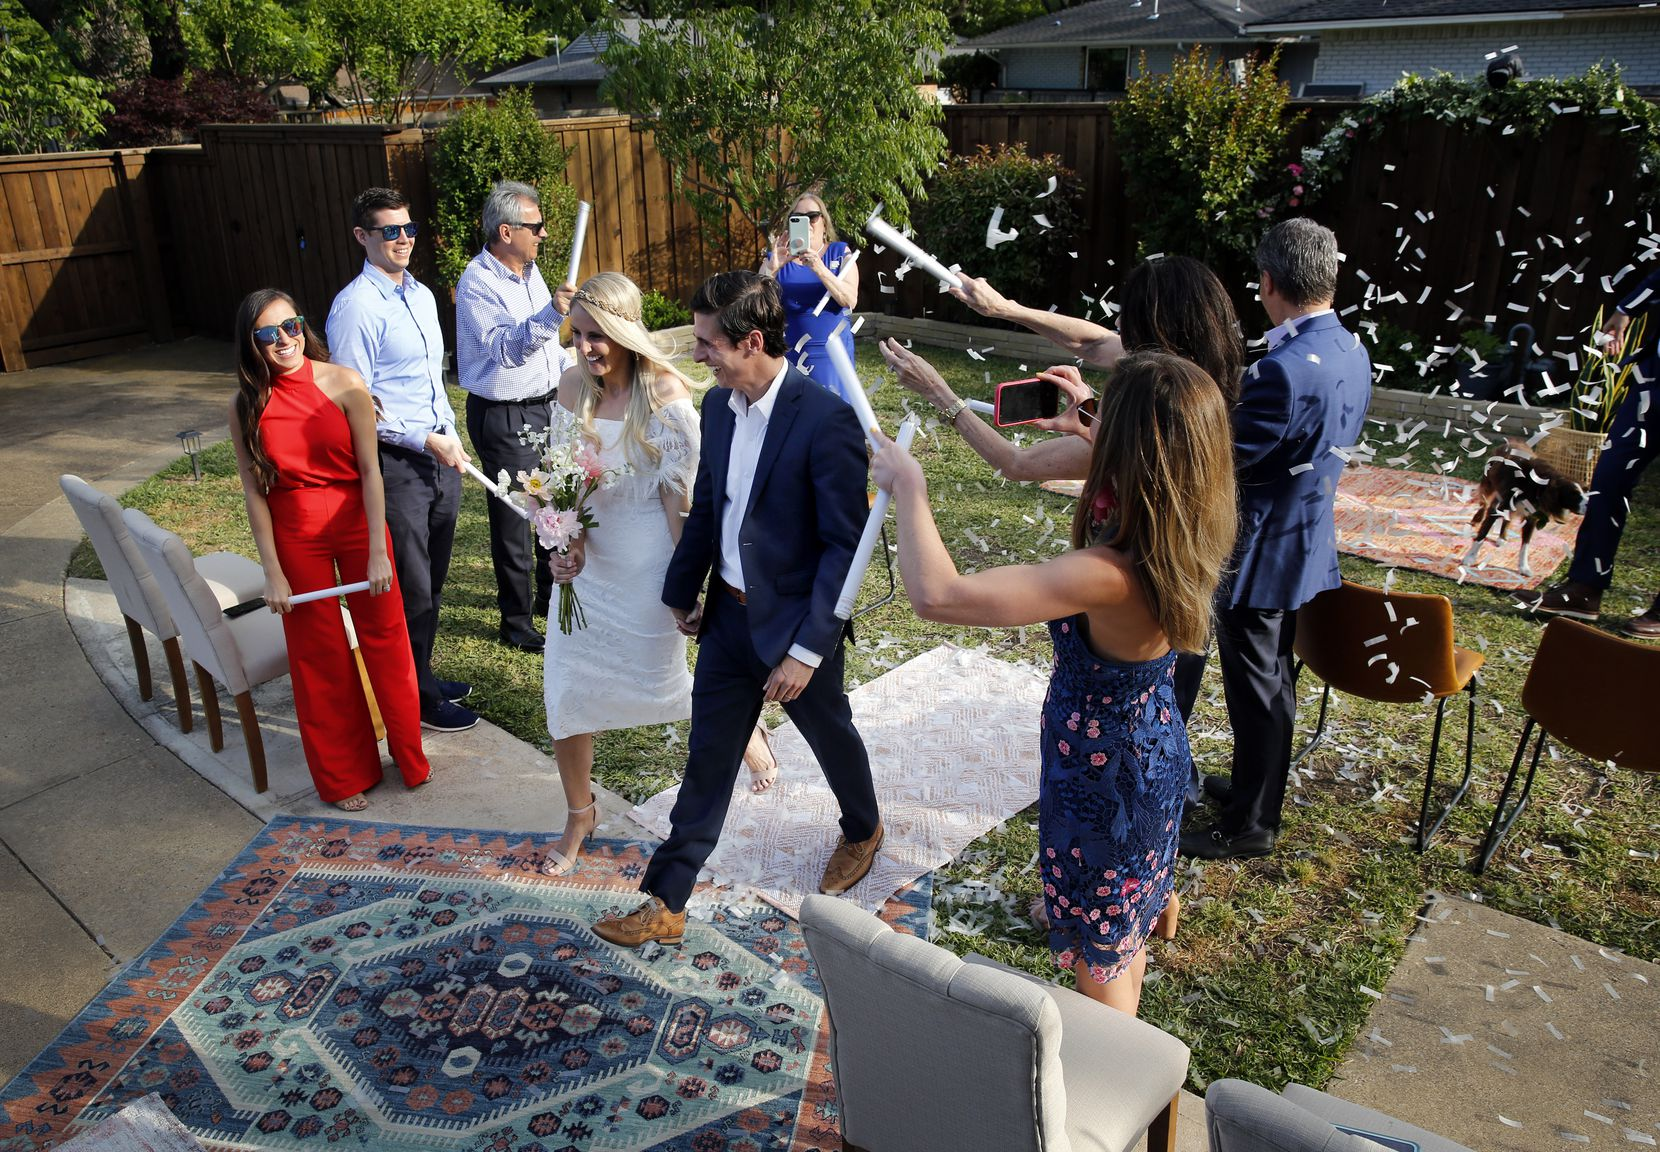 After tying the knot, newlyweds Dana and Andrew Houshian walk down the carpeted aisle as family members toss confetti in the backyard of their northeast Dallas home.